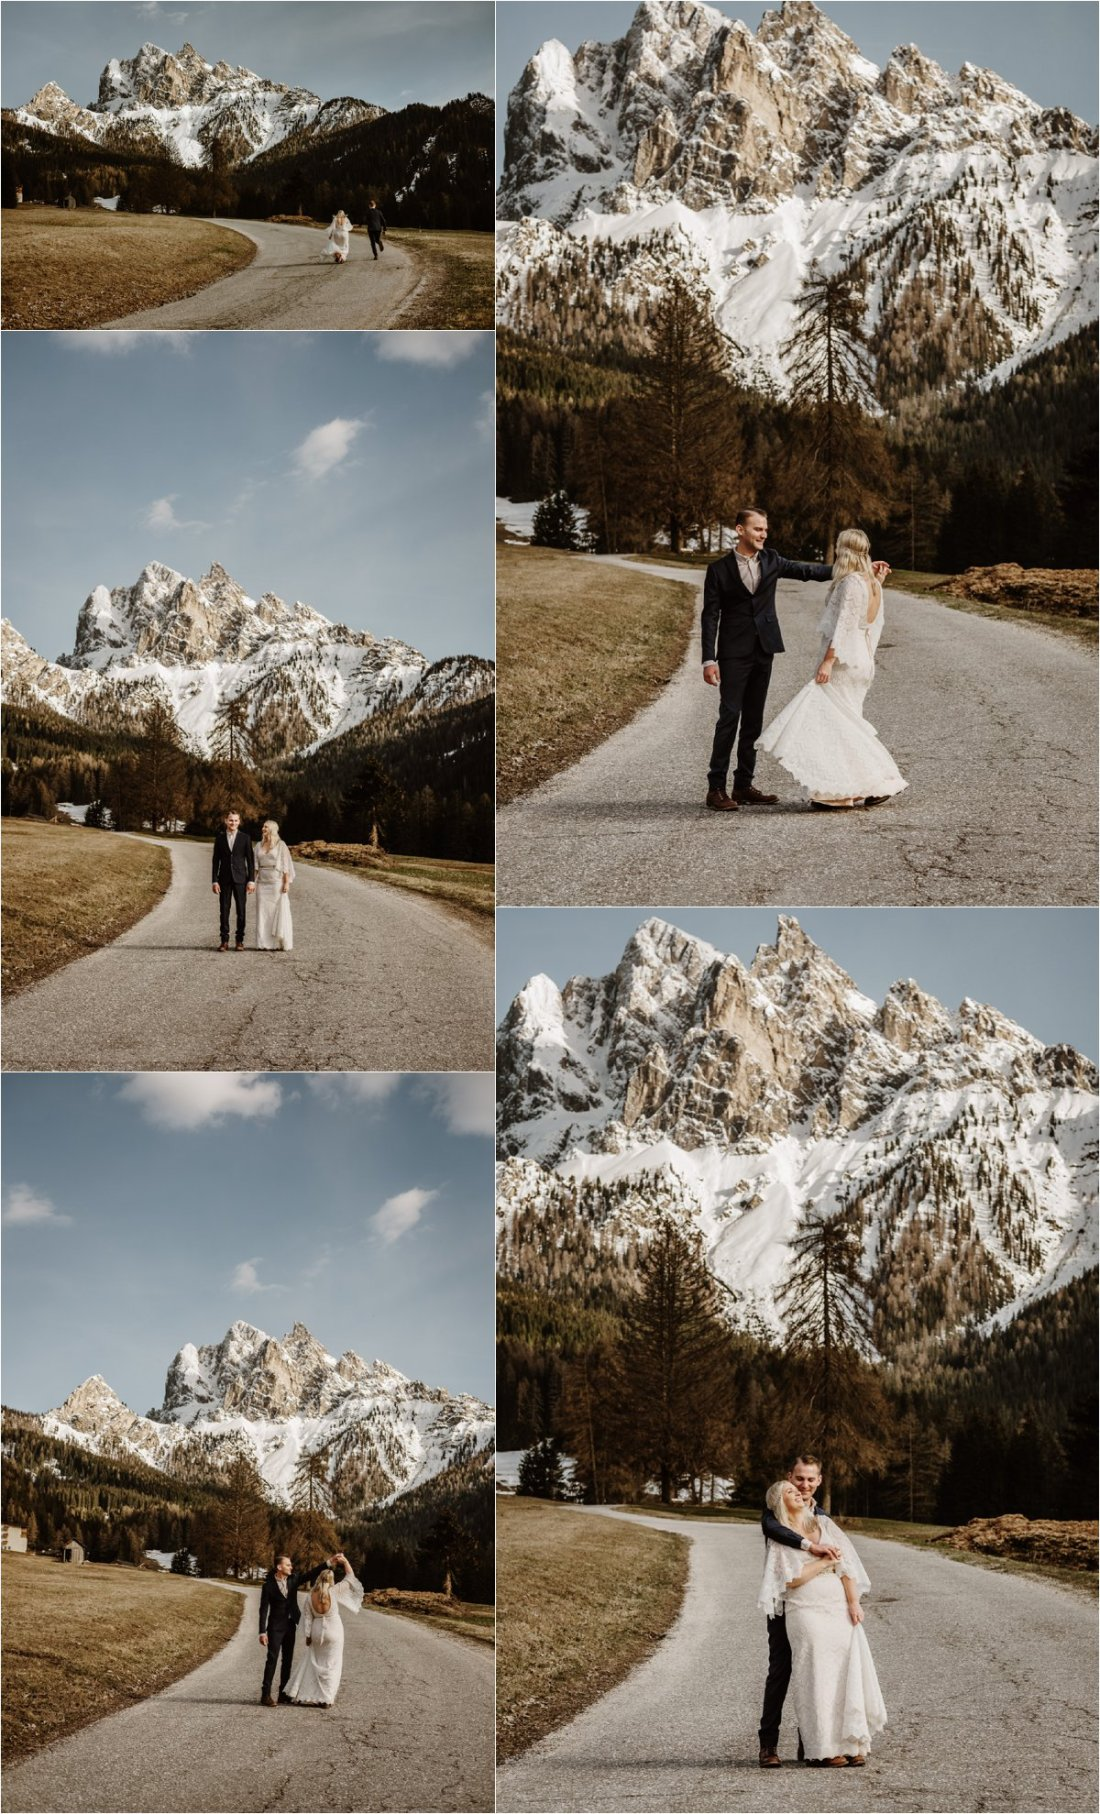 Erika & Nathan dance on the mountain road on their wedding day. Photos by Wild Connections Photography - Alps & Dolomites Elopement Photographer